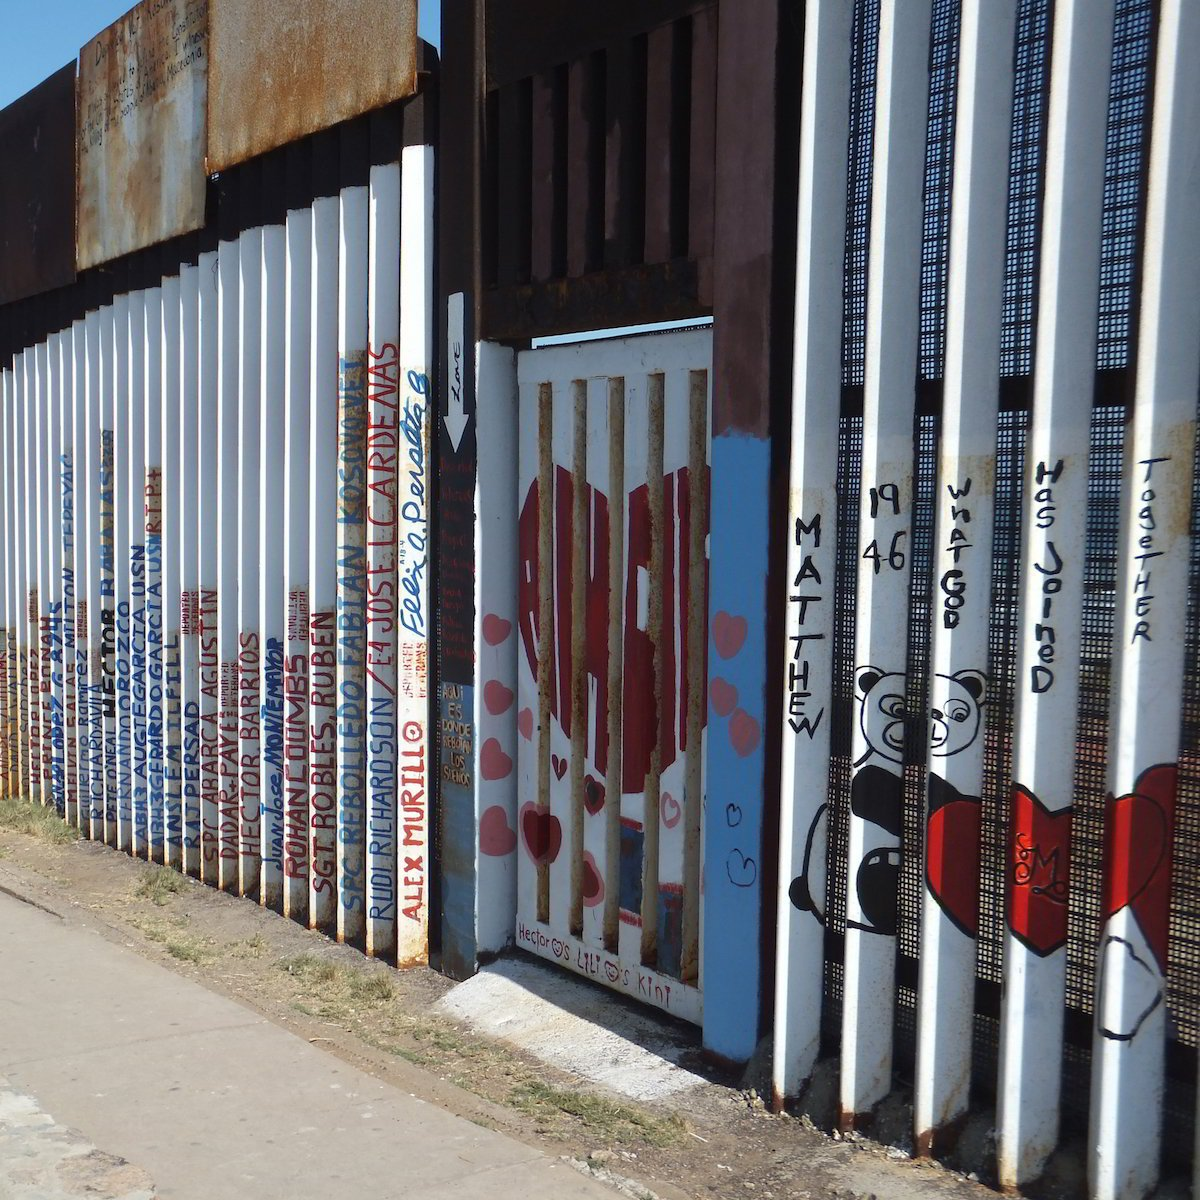 Playas de Tijuana - Gated Heart - Border Fence